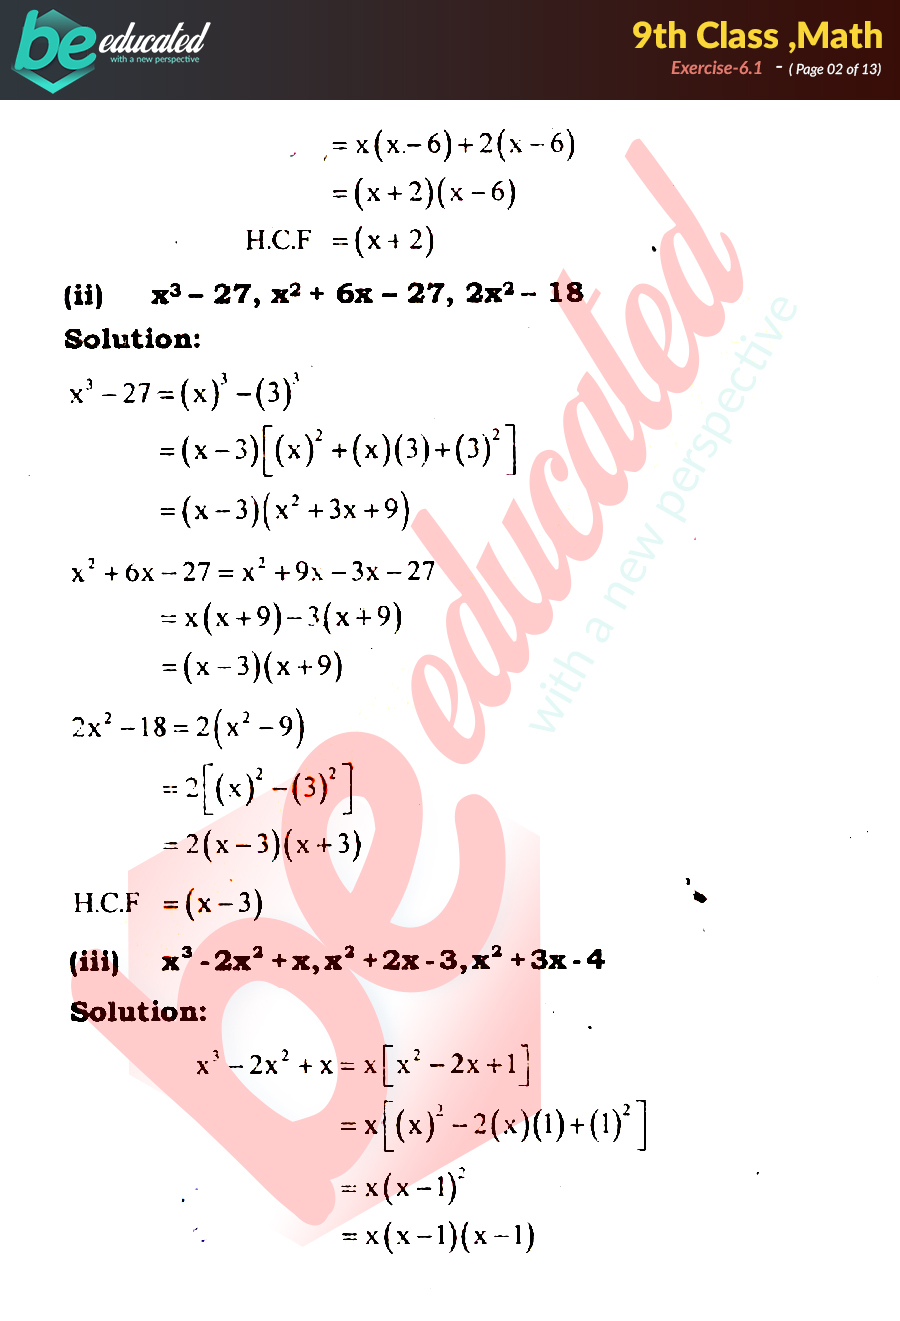 Exercise 6.1 Math 9th Class Notes - Matric Part 1 Notes